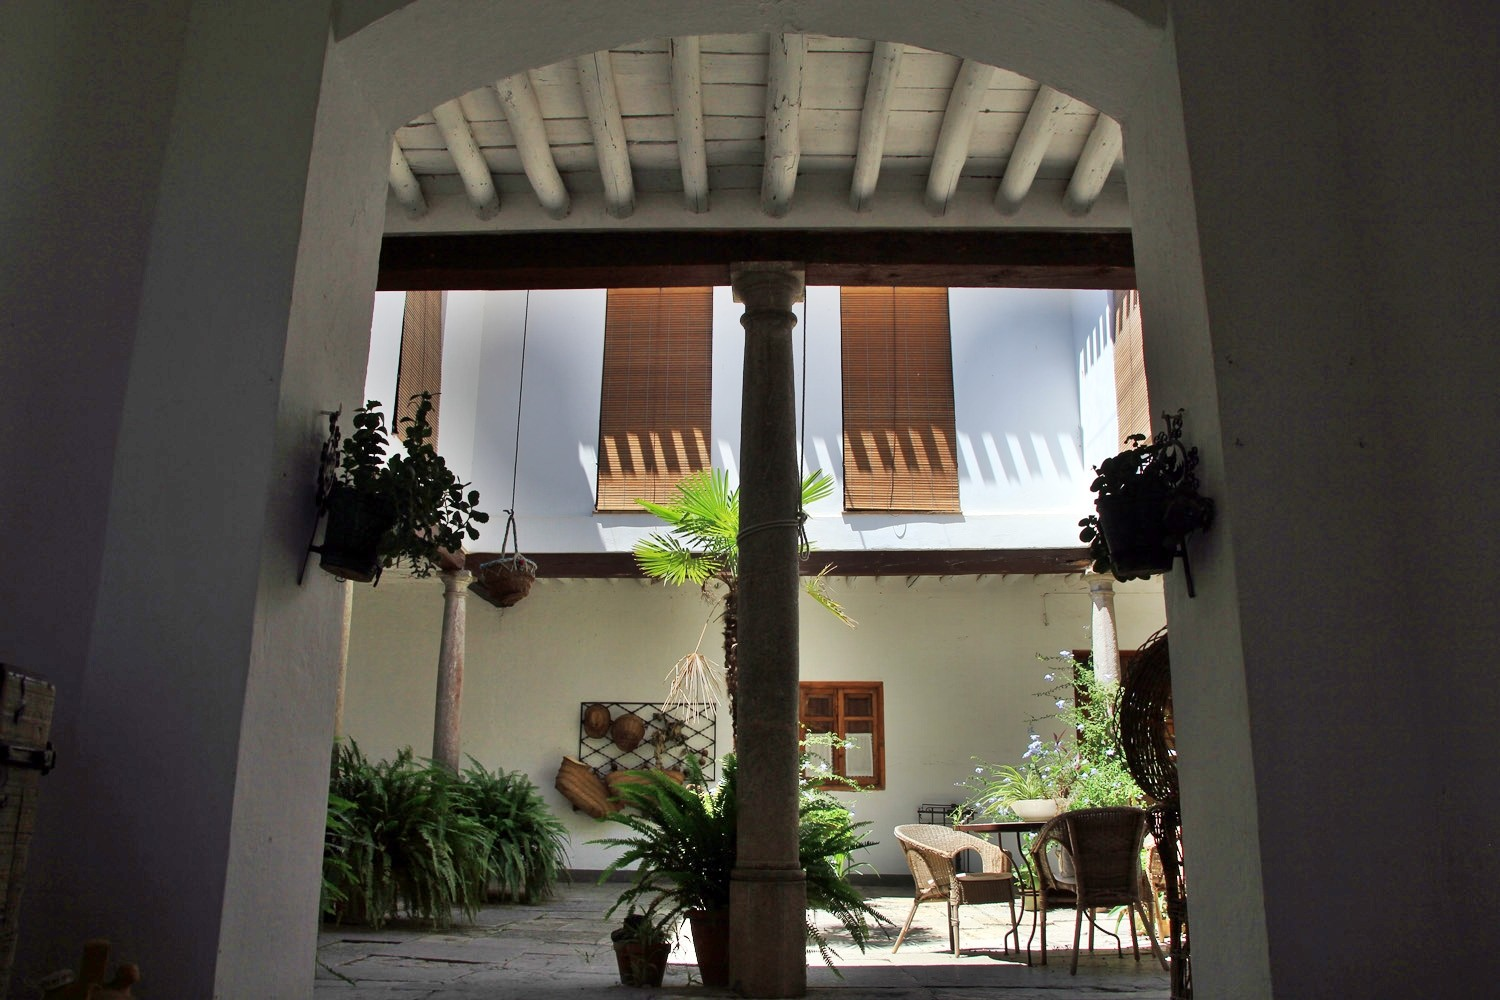 The entrance to the courtyard